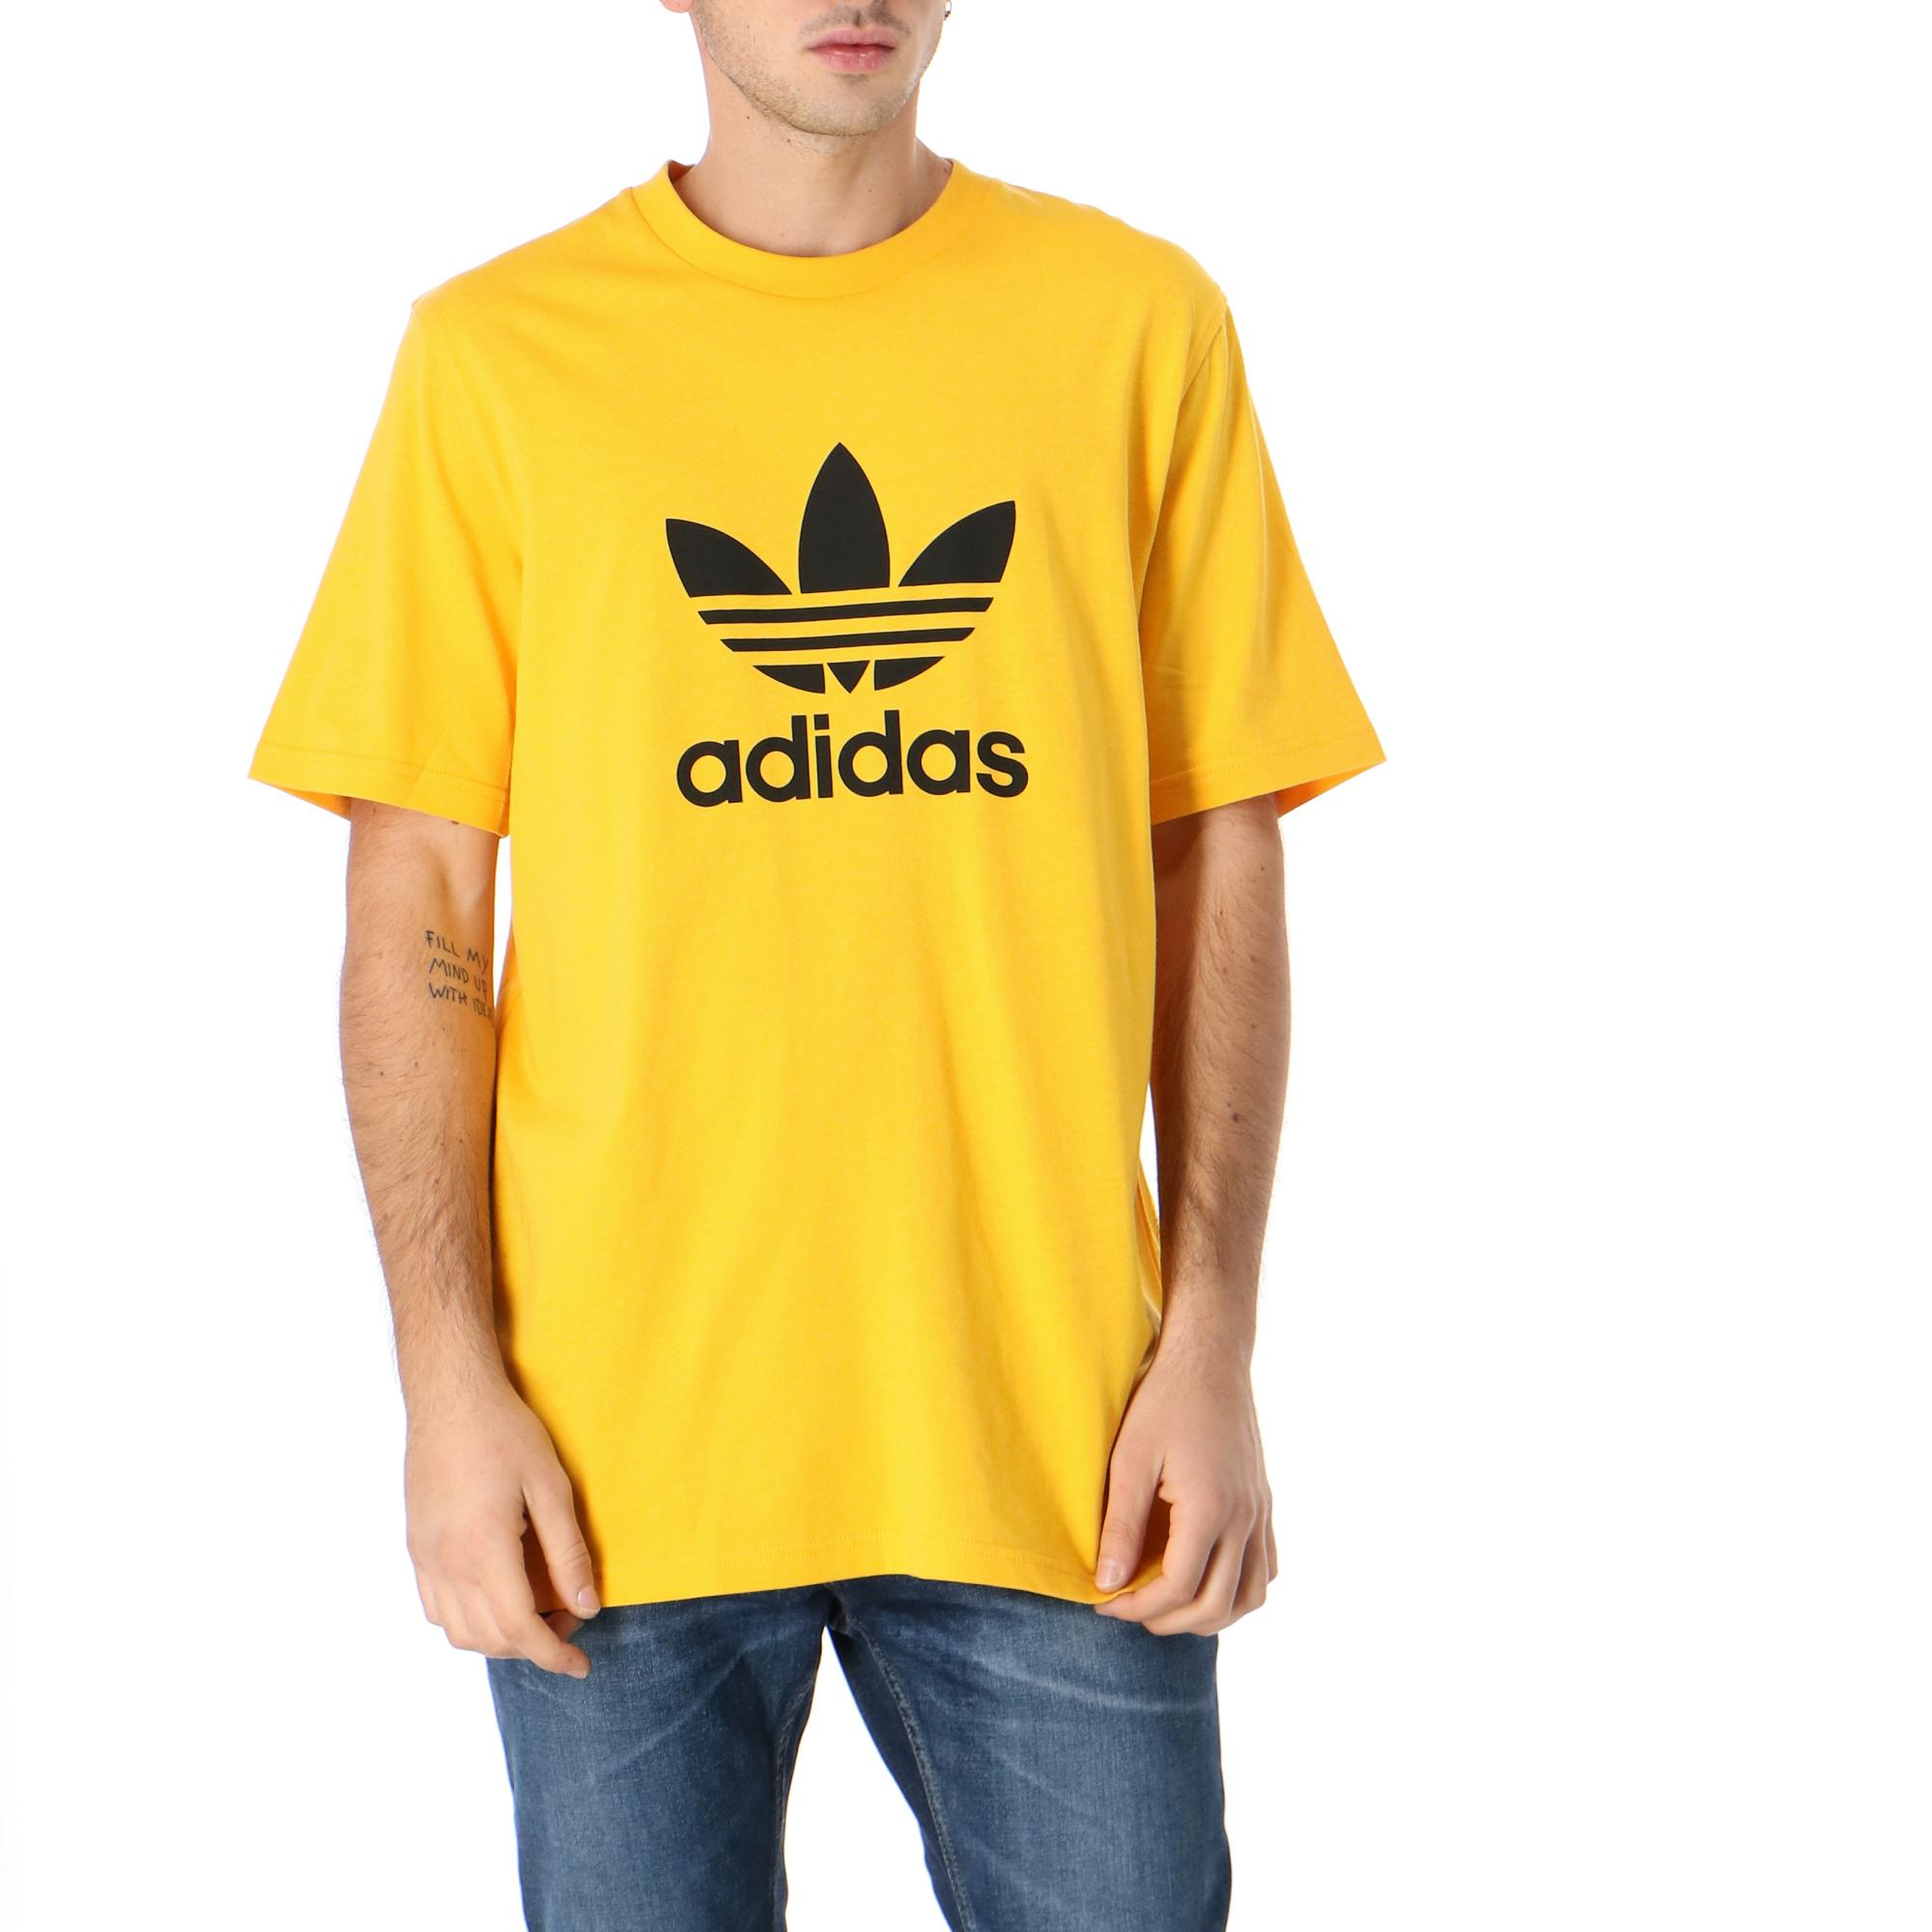 Adidas Trefoil Tee<br/> Active gold